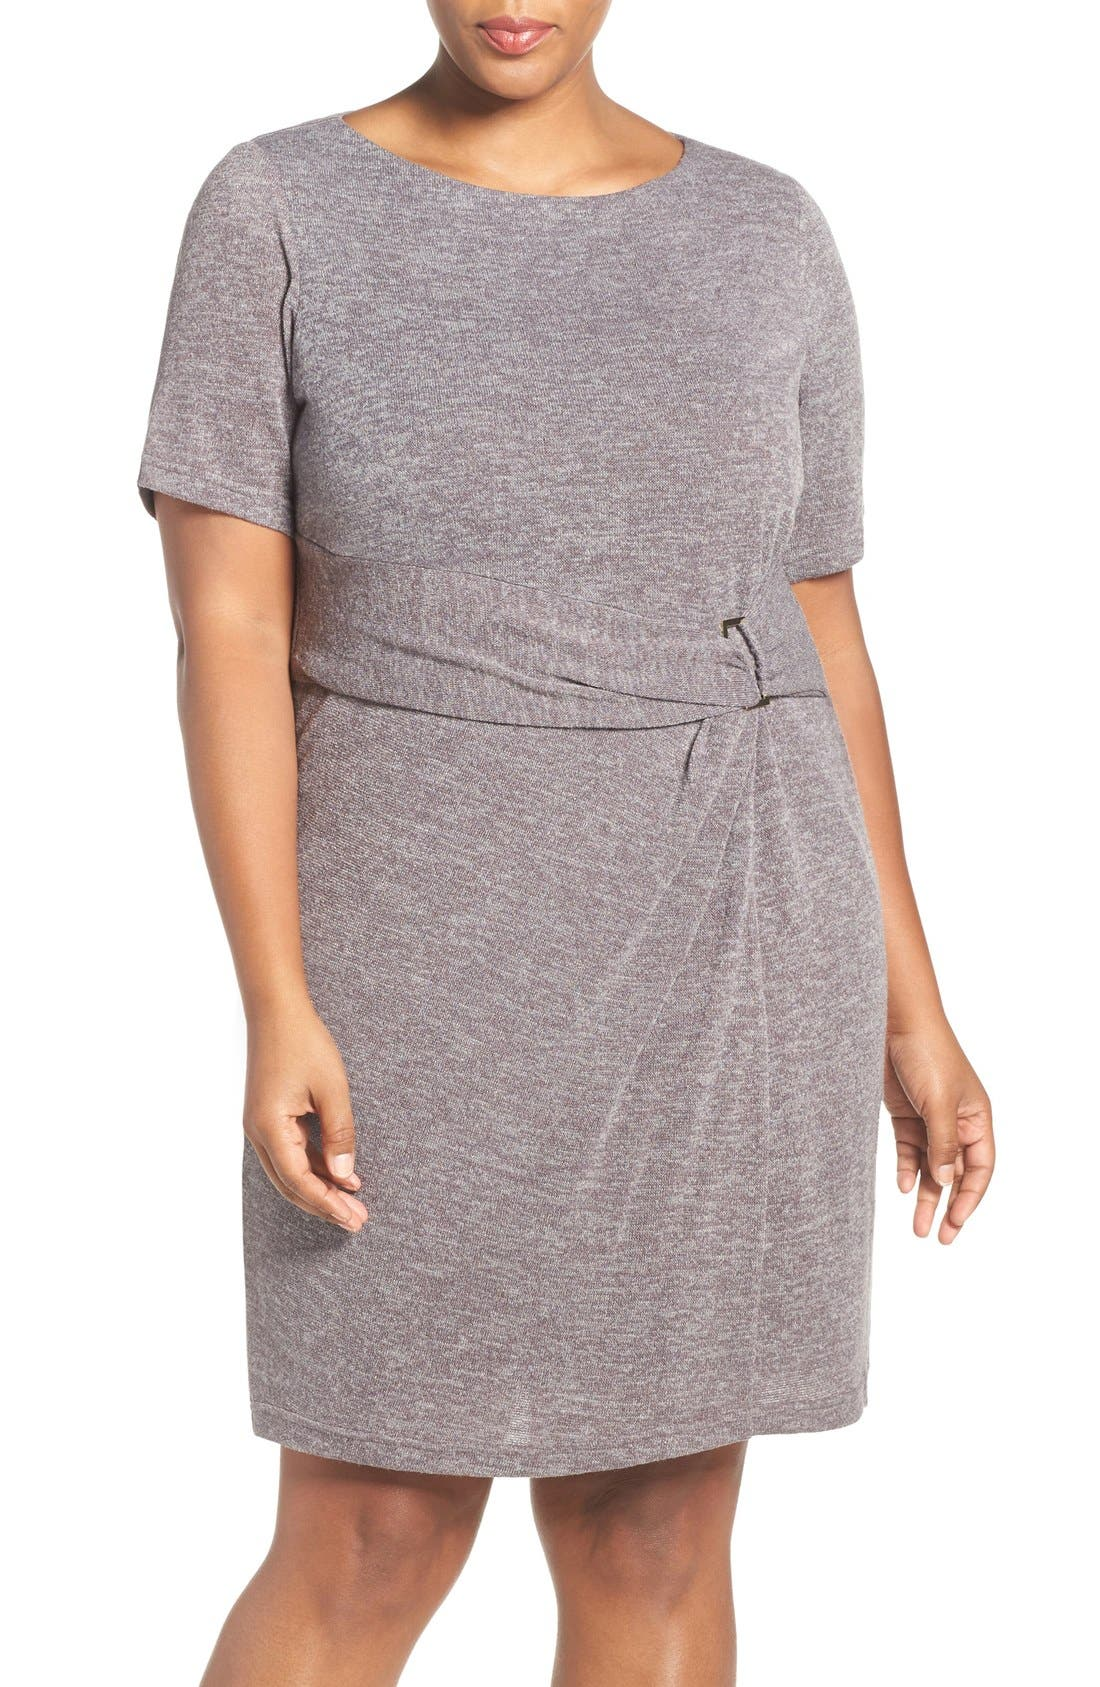 ELLEN TRACY Buckle Detail Knit Sheath Dress